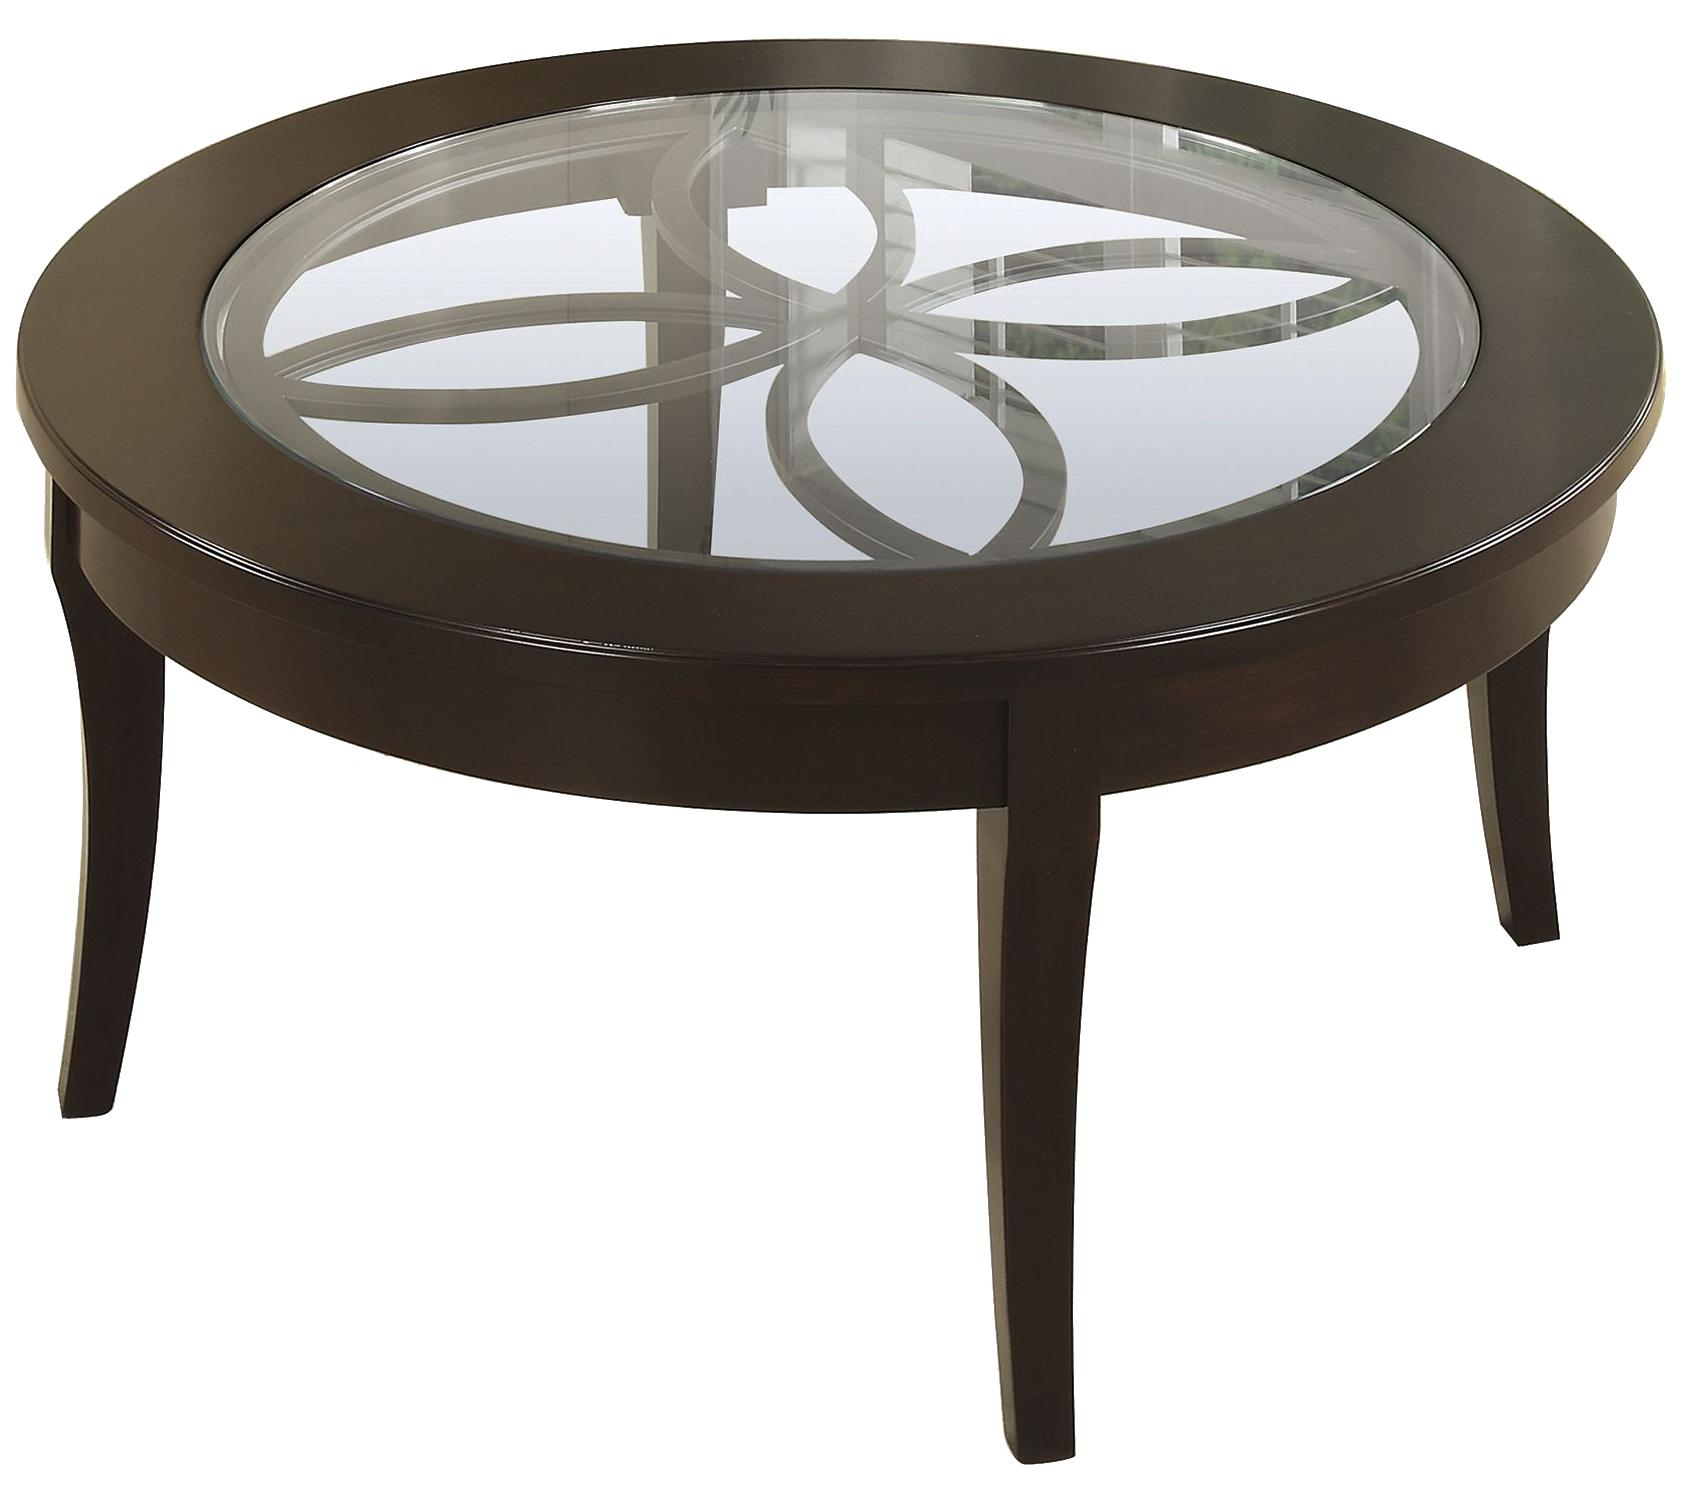 Riverside Furniture Annandale Round Coffee Table - Item Number: 12403